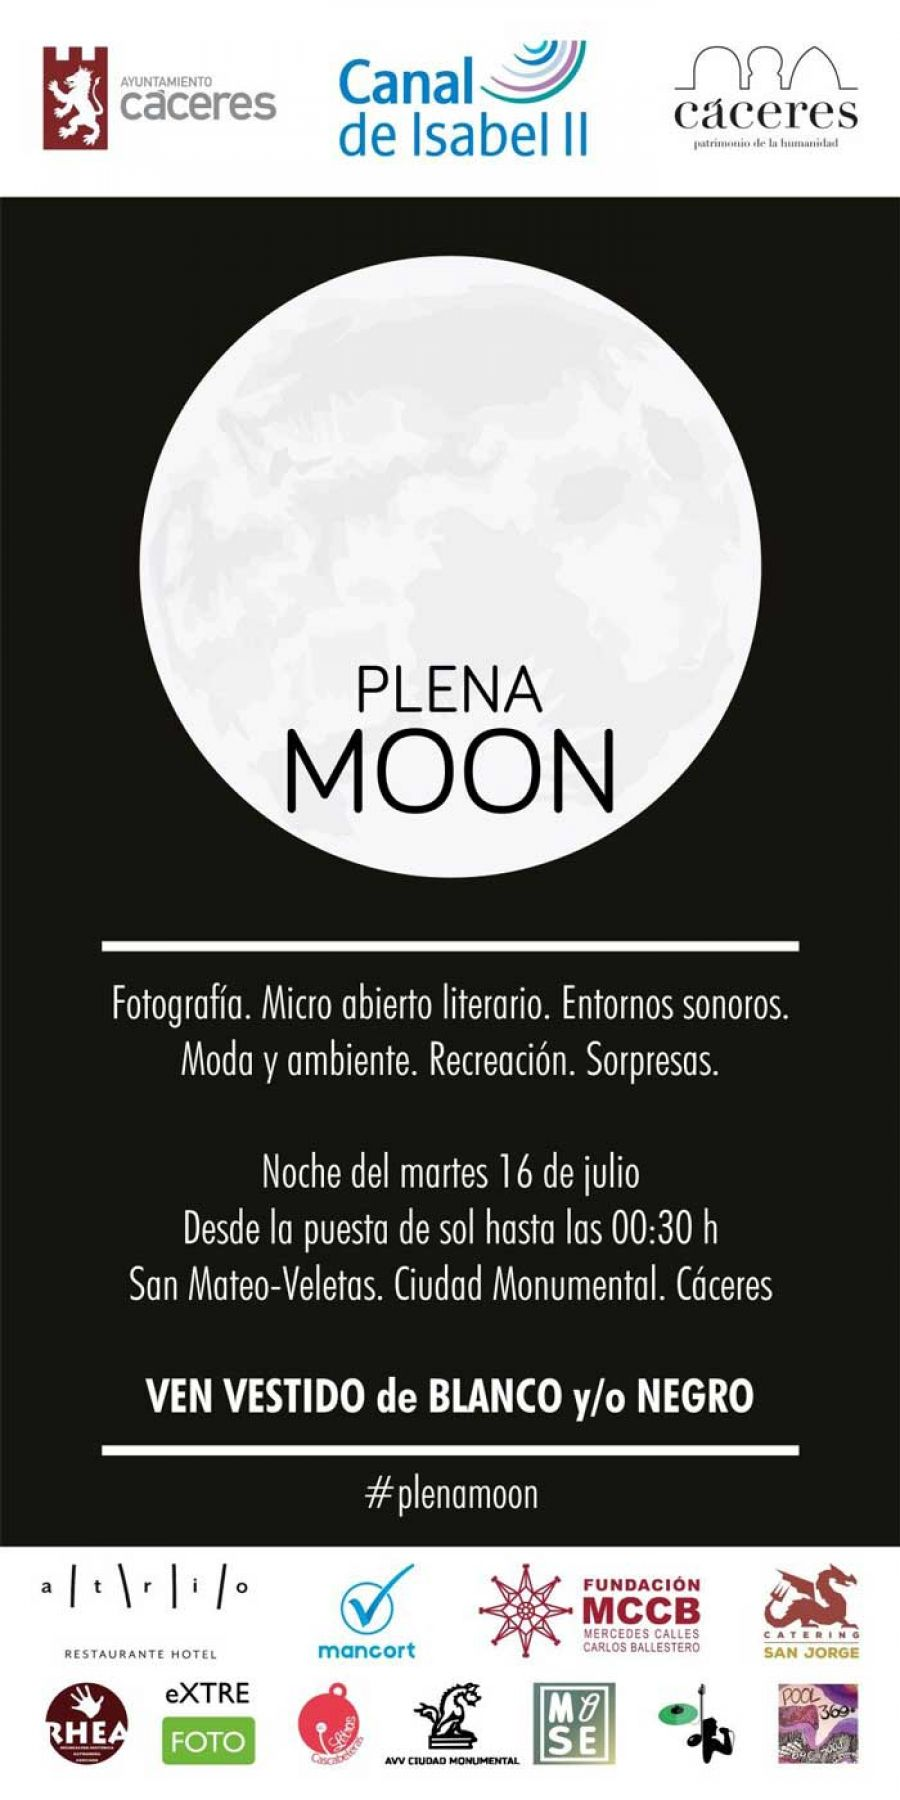 Plena MOON Cáceres 2019 | JULIO